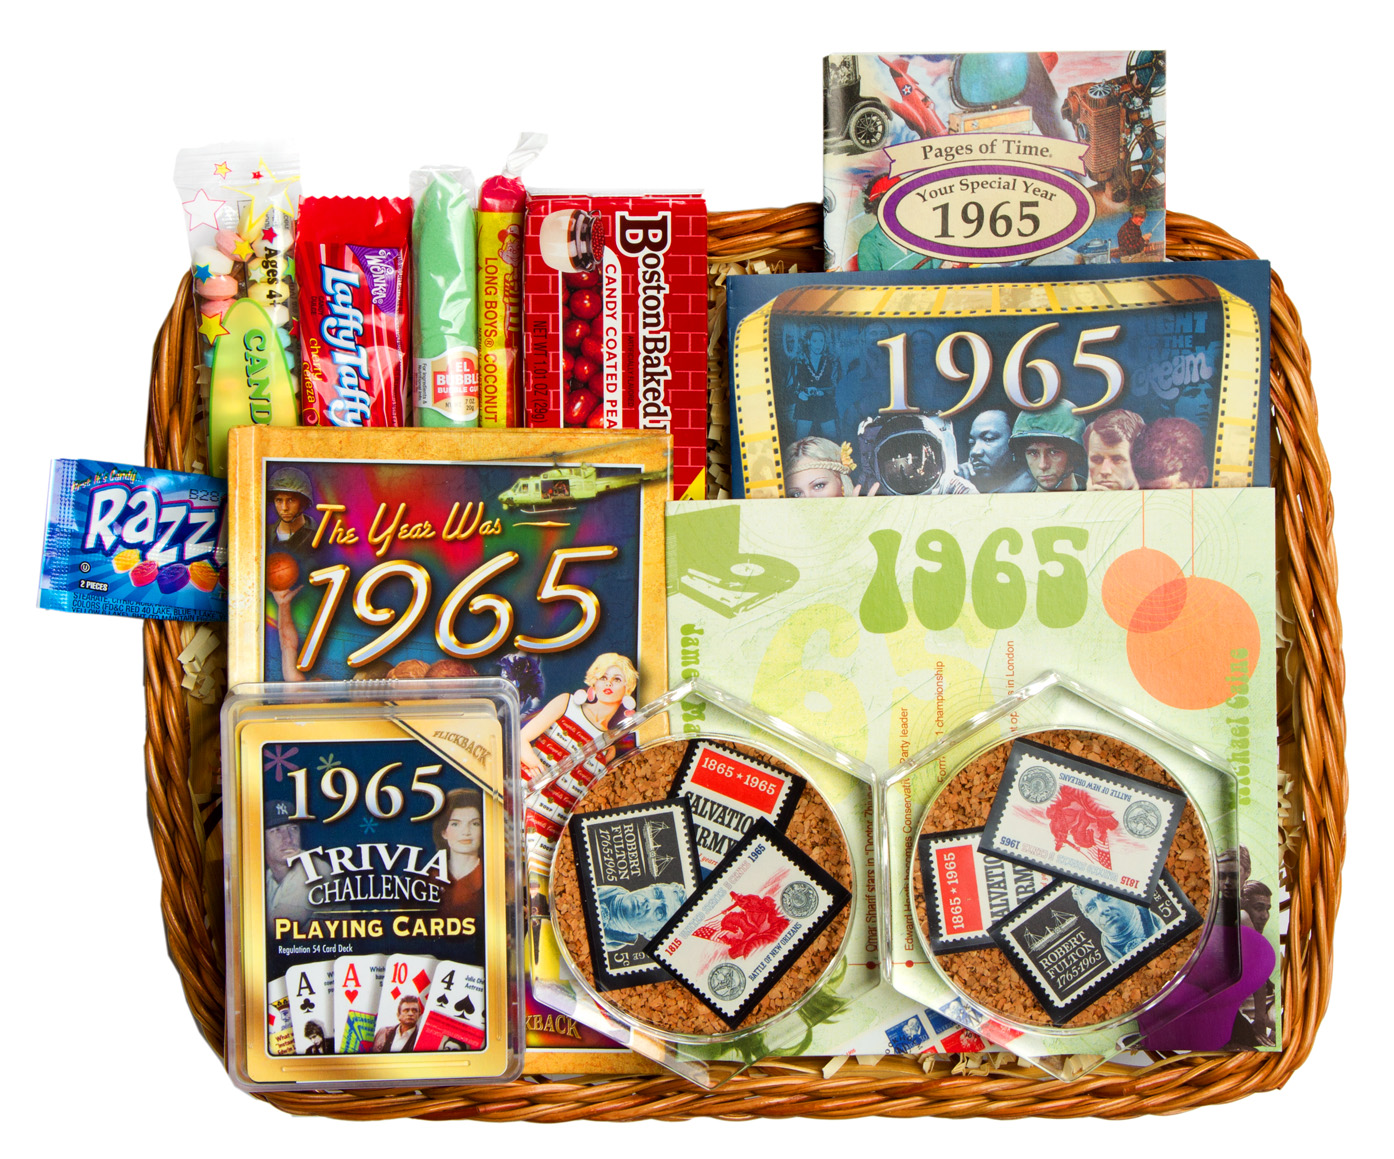 50th wedding anniversary gift basket with 1965 or 1966 stamps